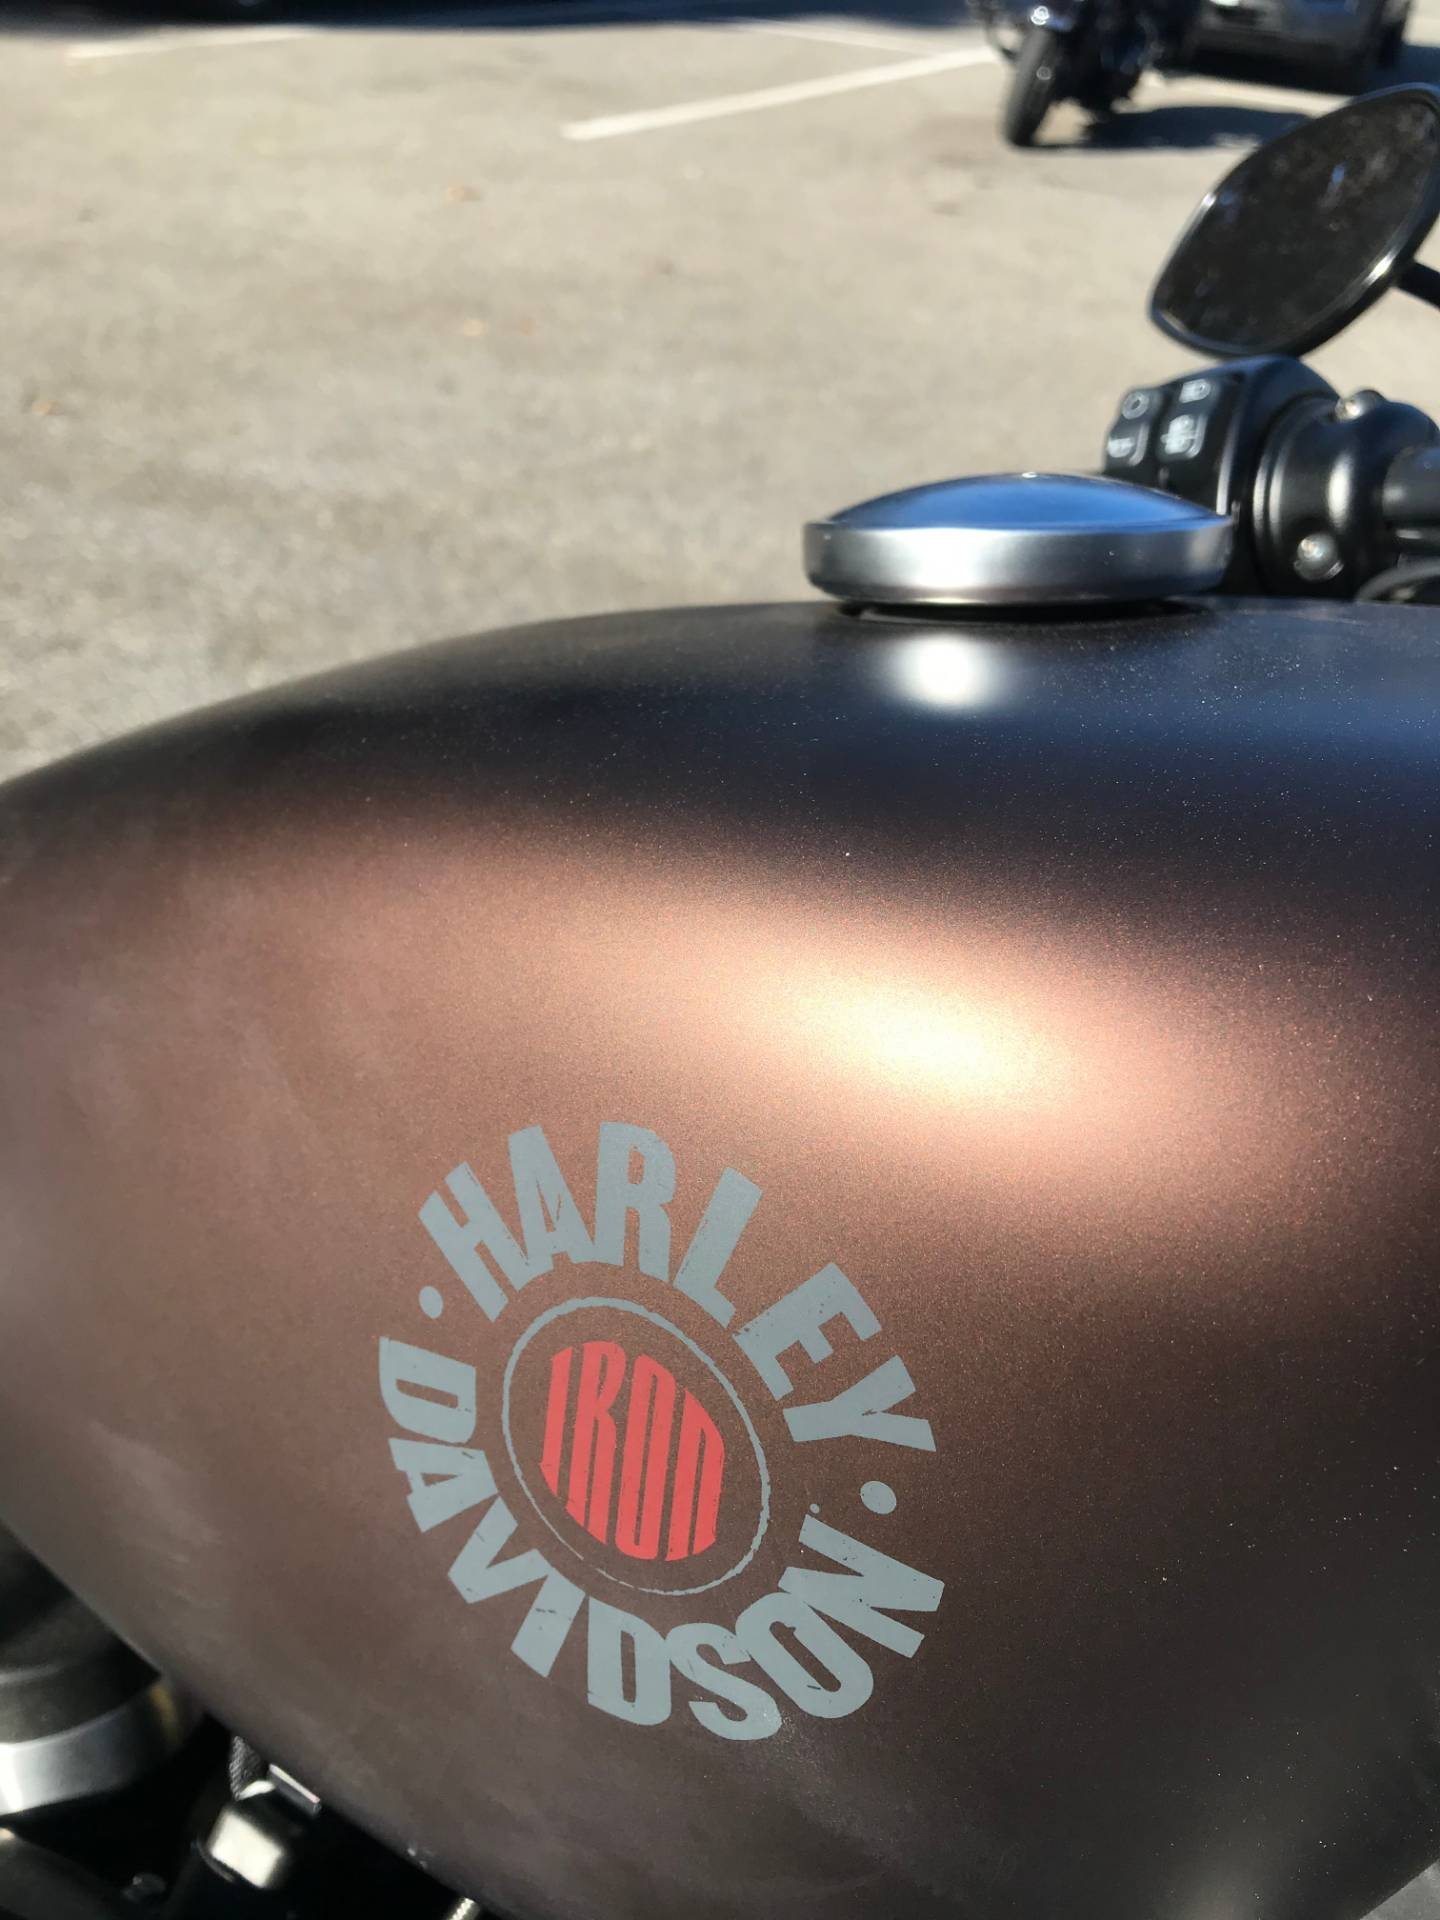 2019 Harley-Davidson IRON 883 in Lakewood, New Jersey - Photo 2